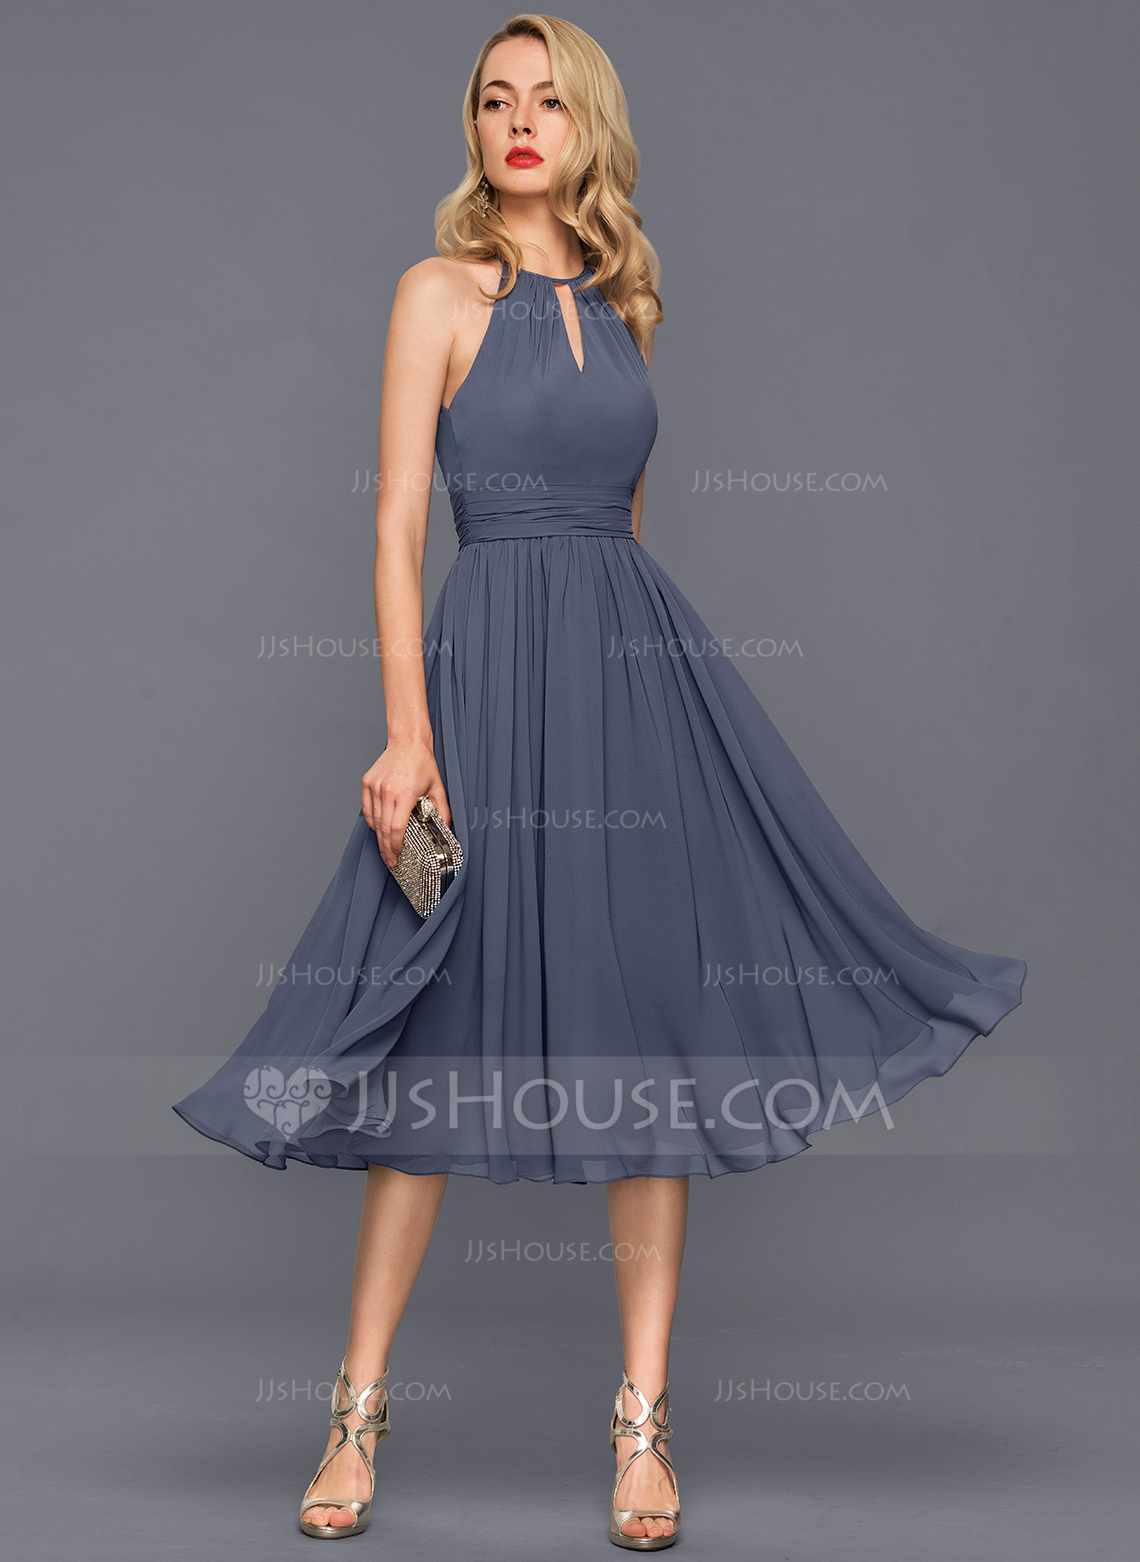 JJsHouse A-Line Scoop Neck Knee-Length Chiffon Cocktail Dress With